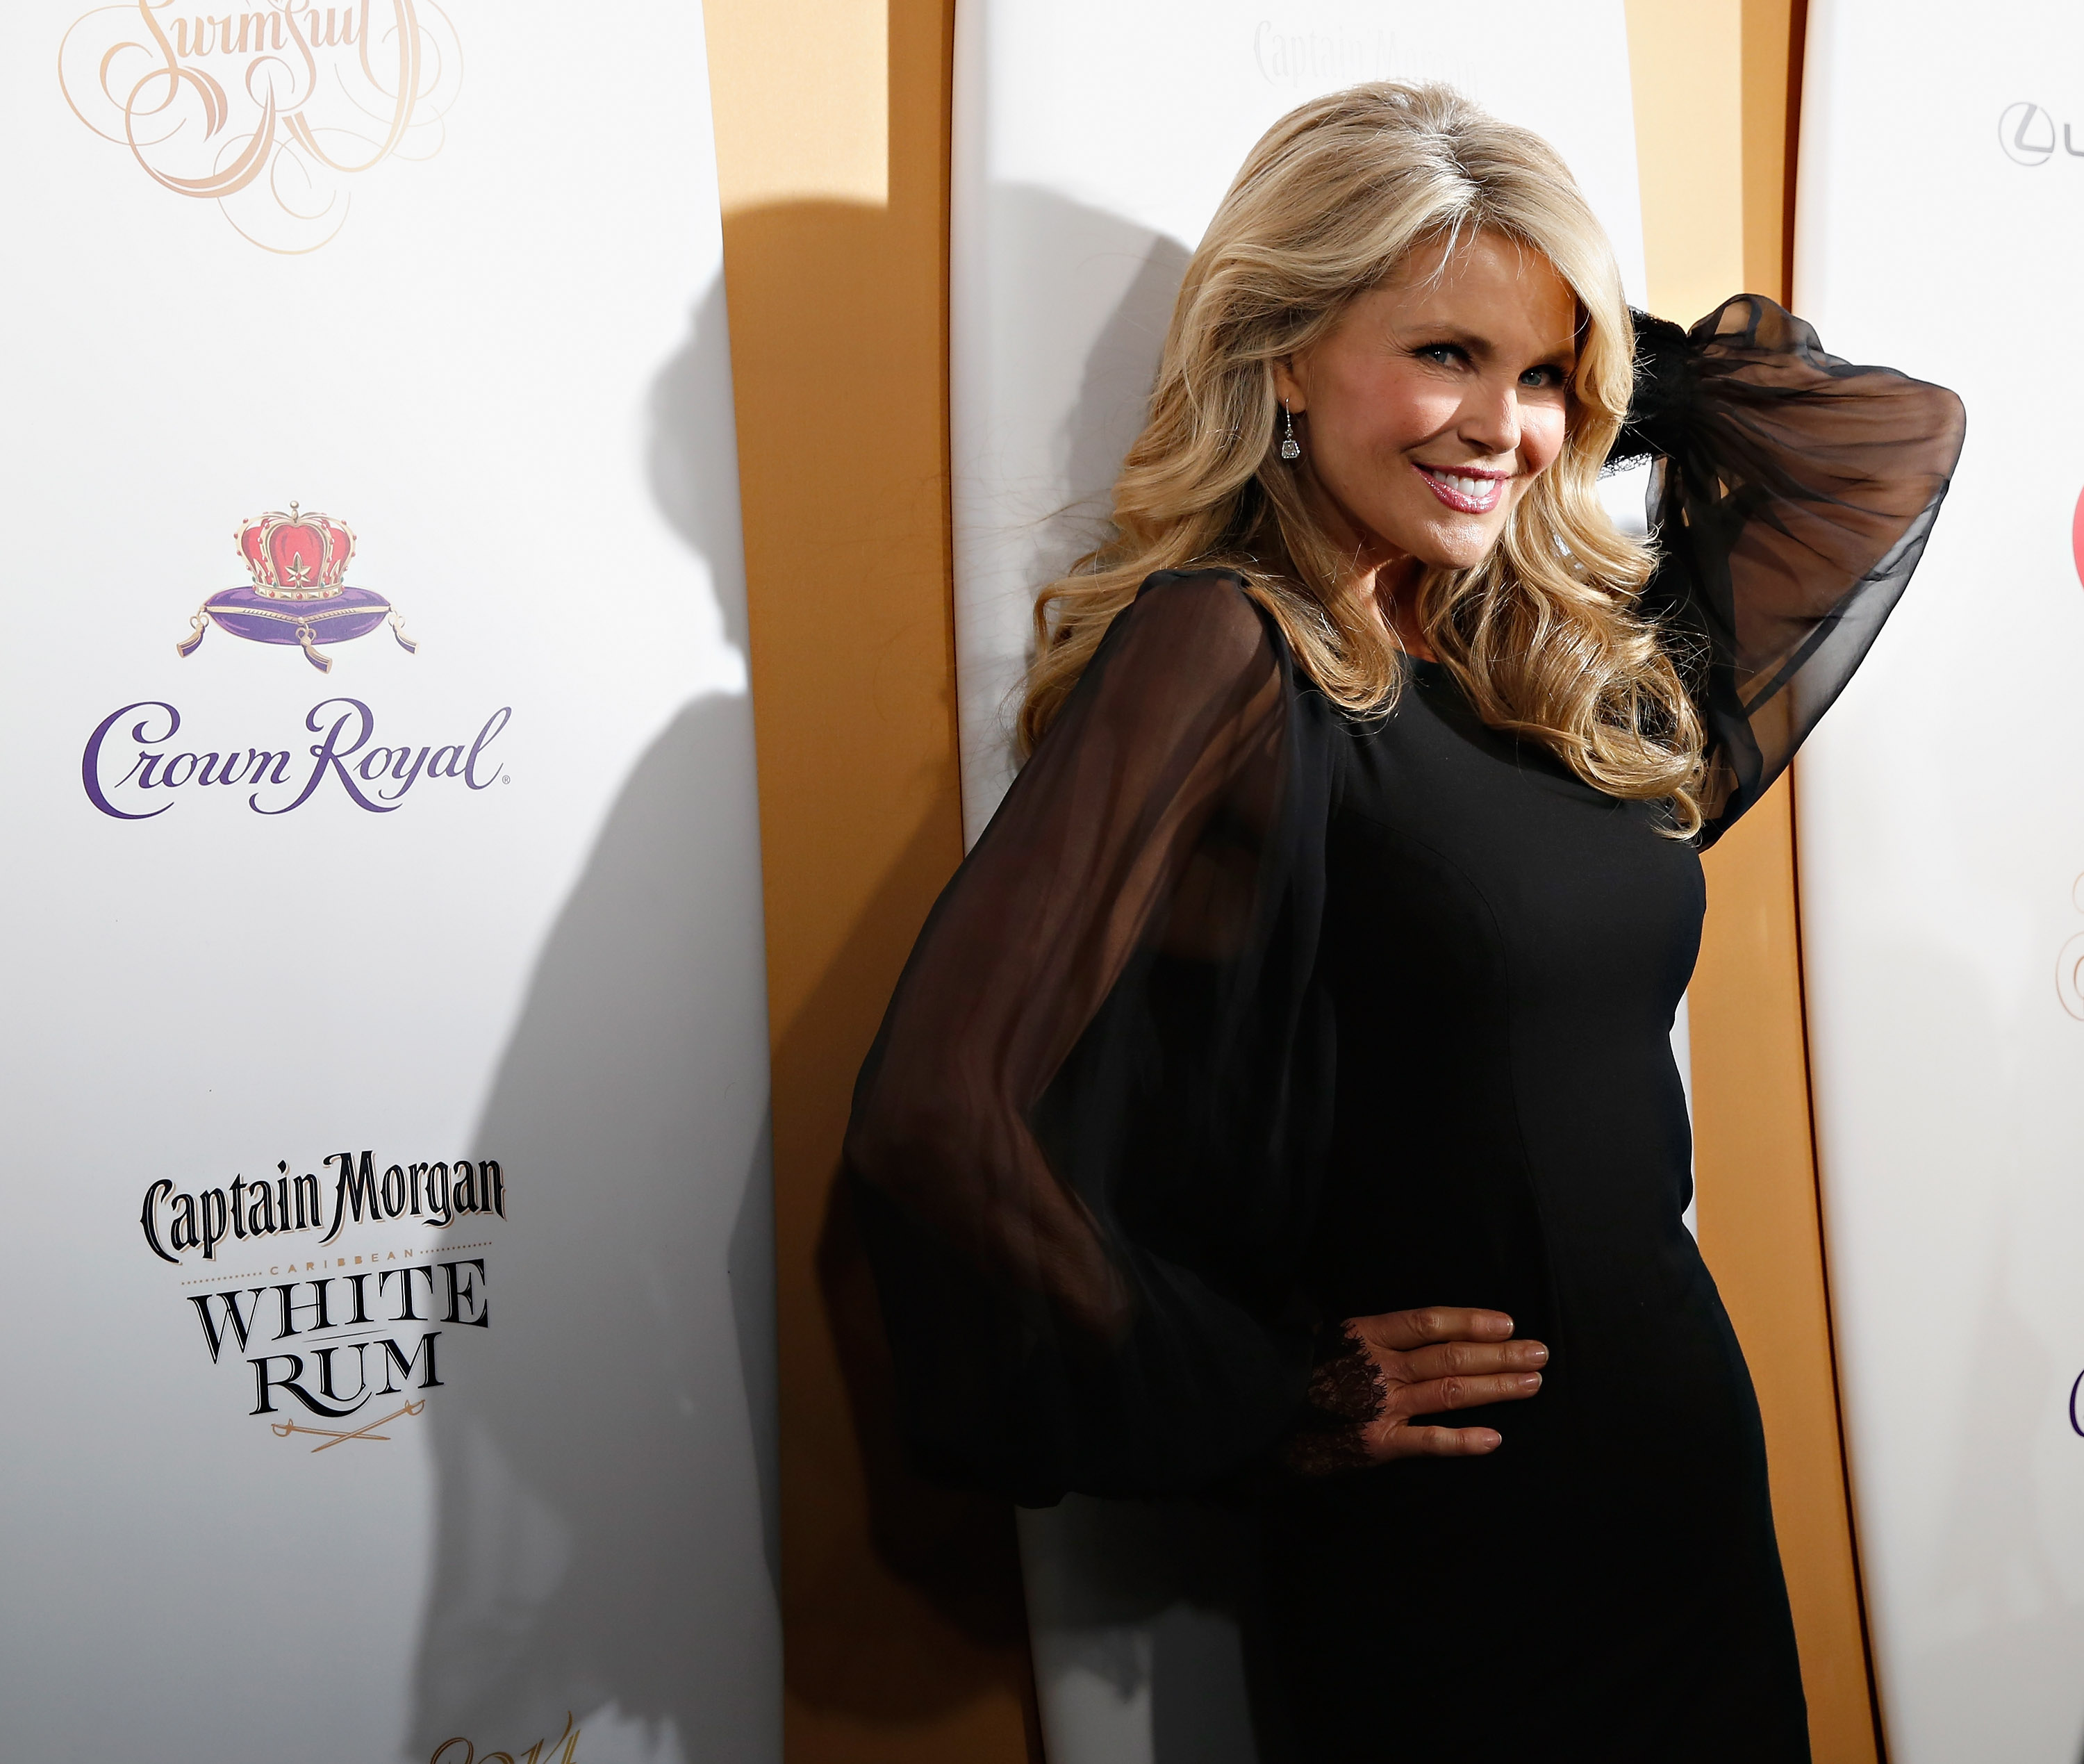 supermodel christie brinkley rode a horse to the southlake launch of